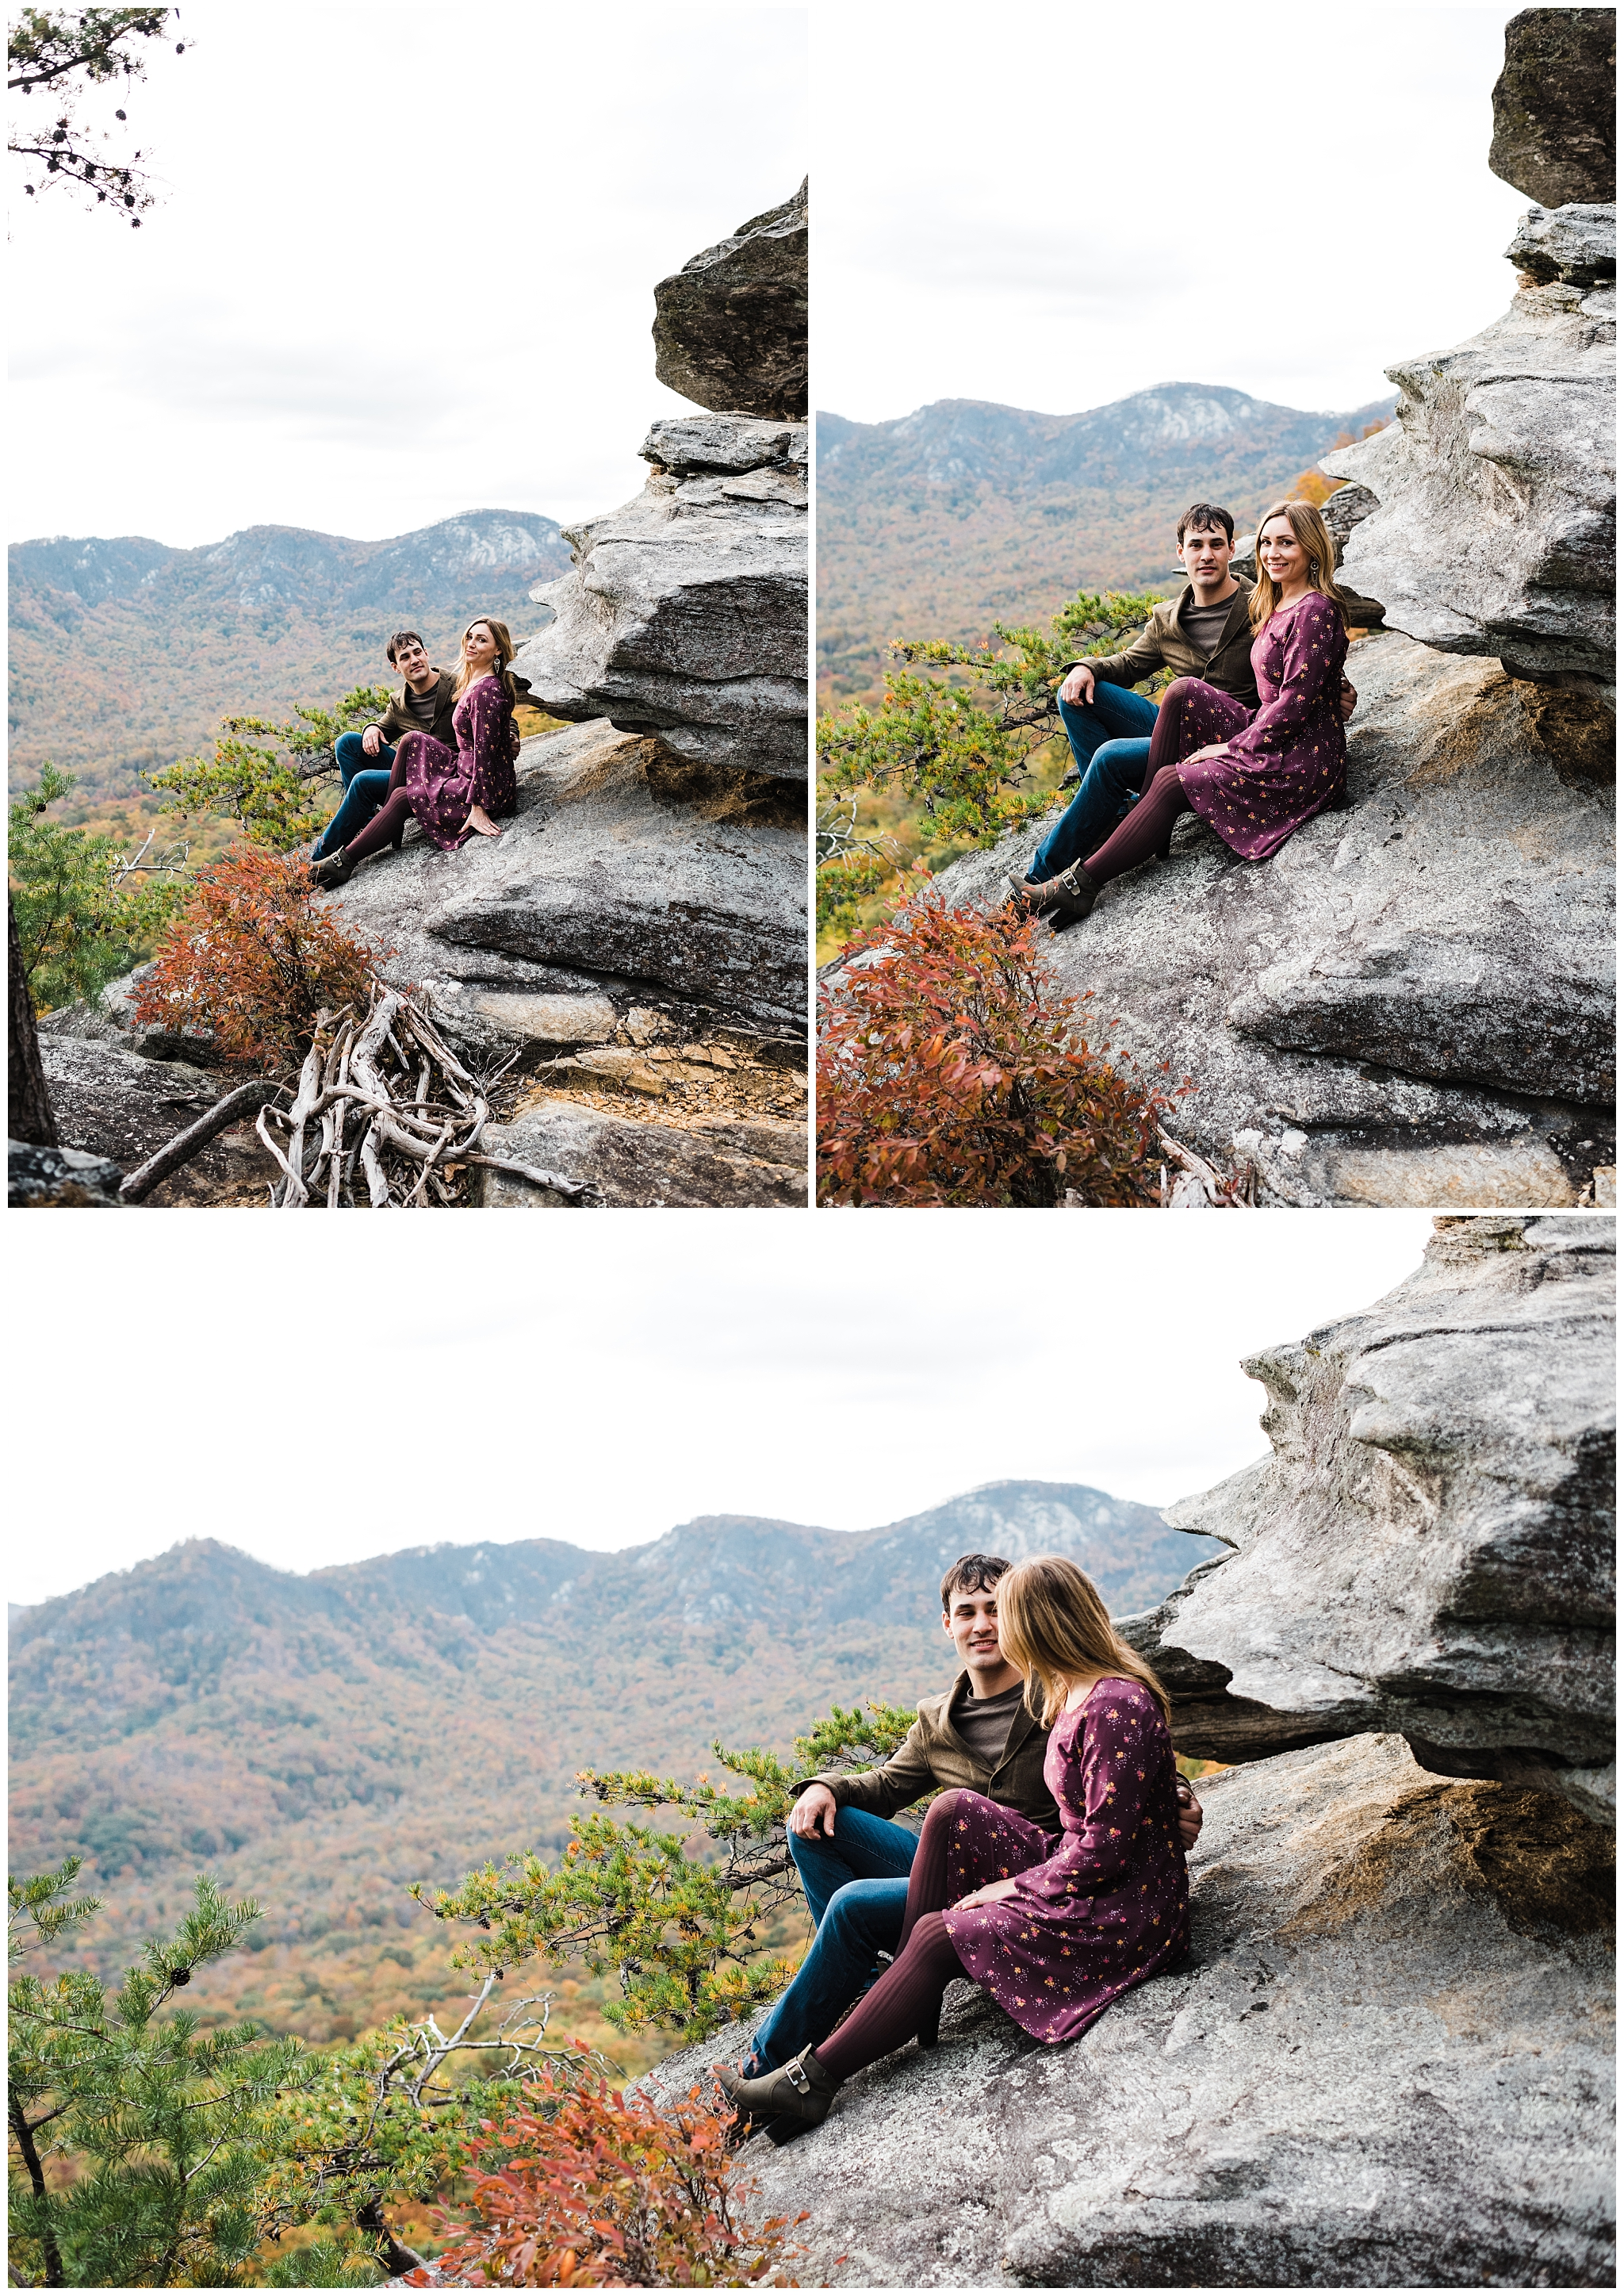 Easterday Creative | Adventurous wedding photographer and storyteller | Valentina + Anthony | Rumbling Bald Adventure Photo Session | Chimney Rock, NC